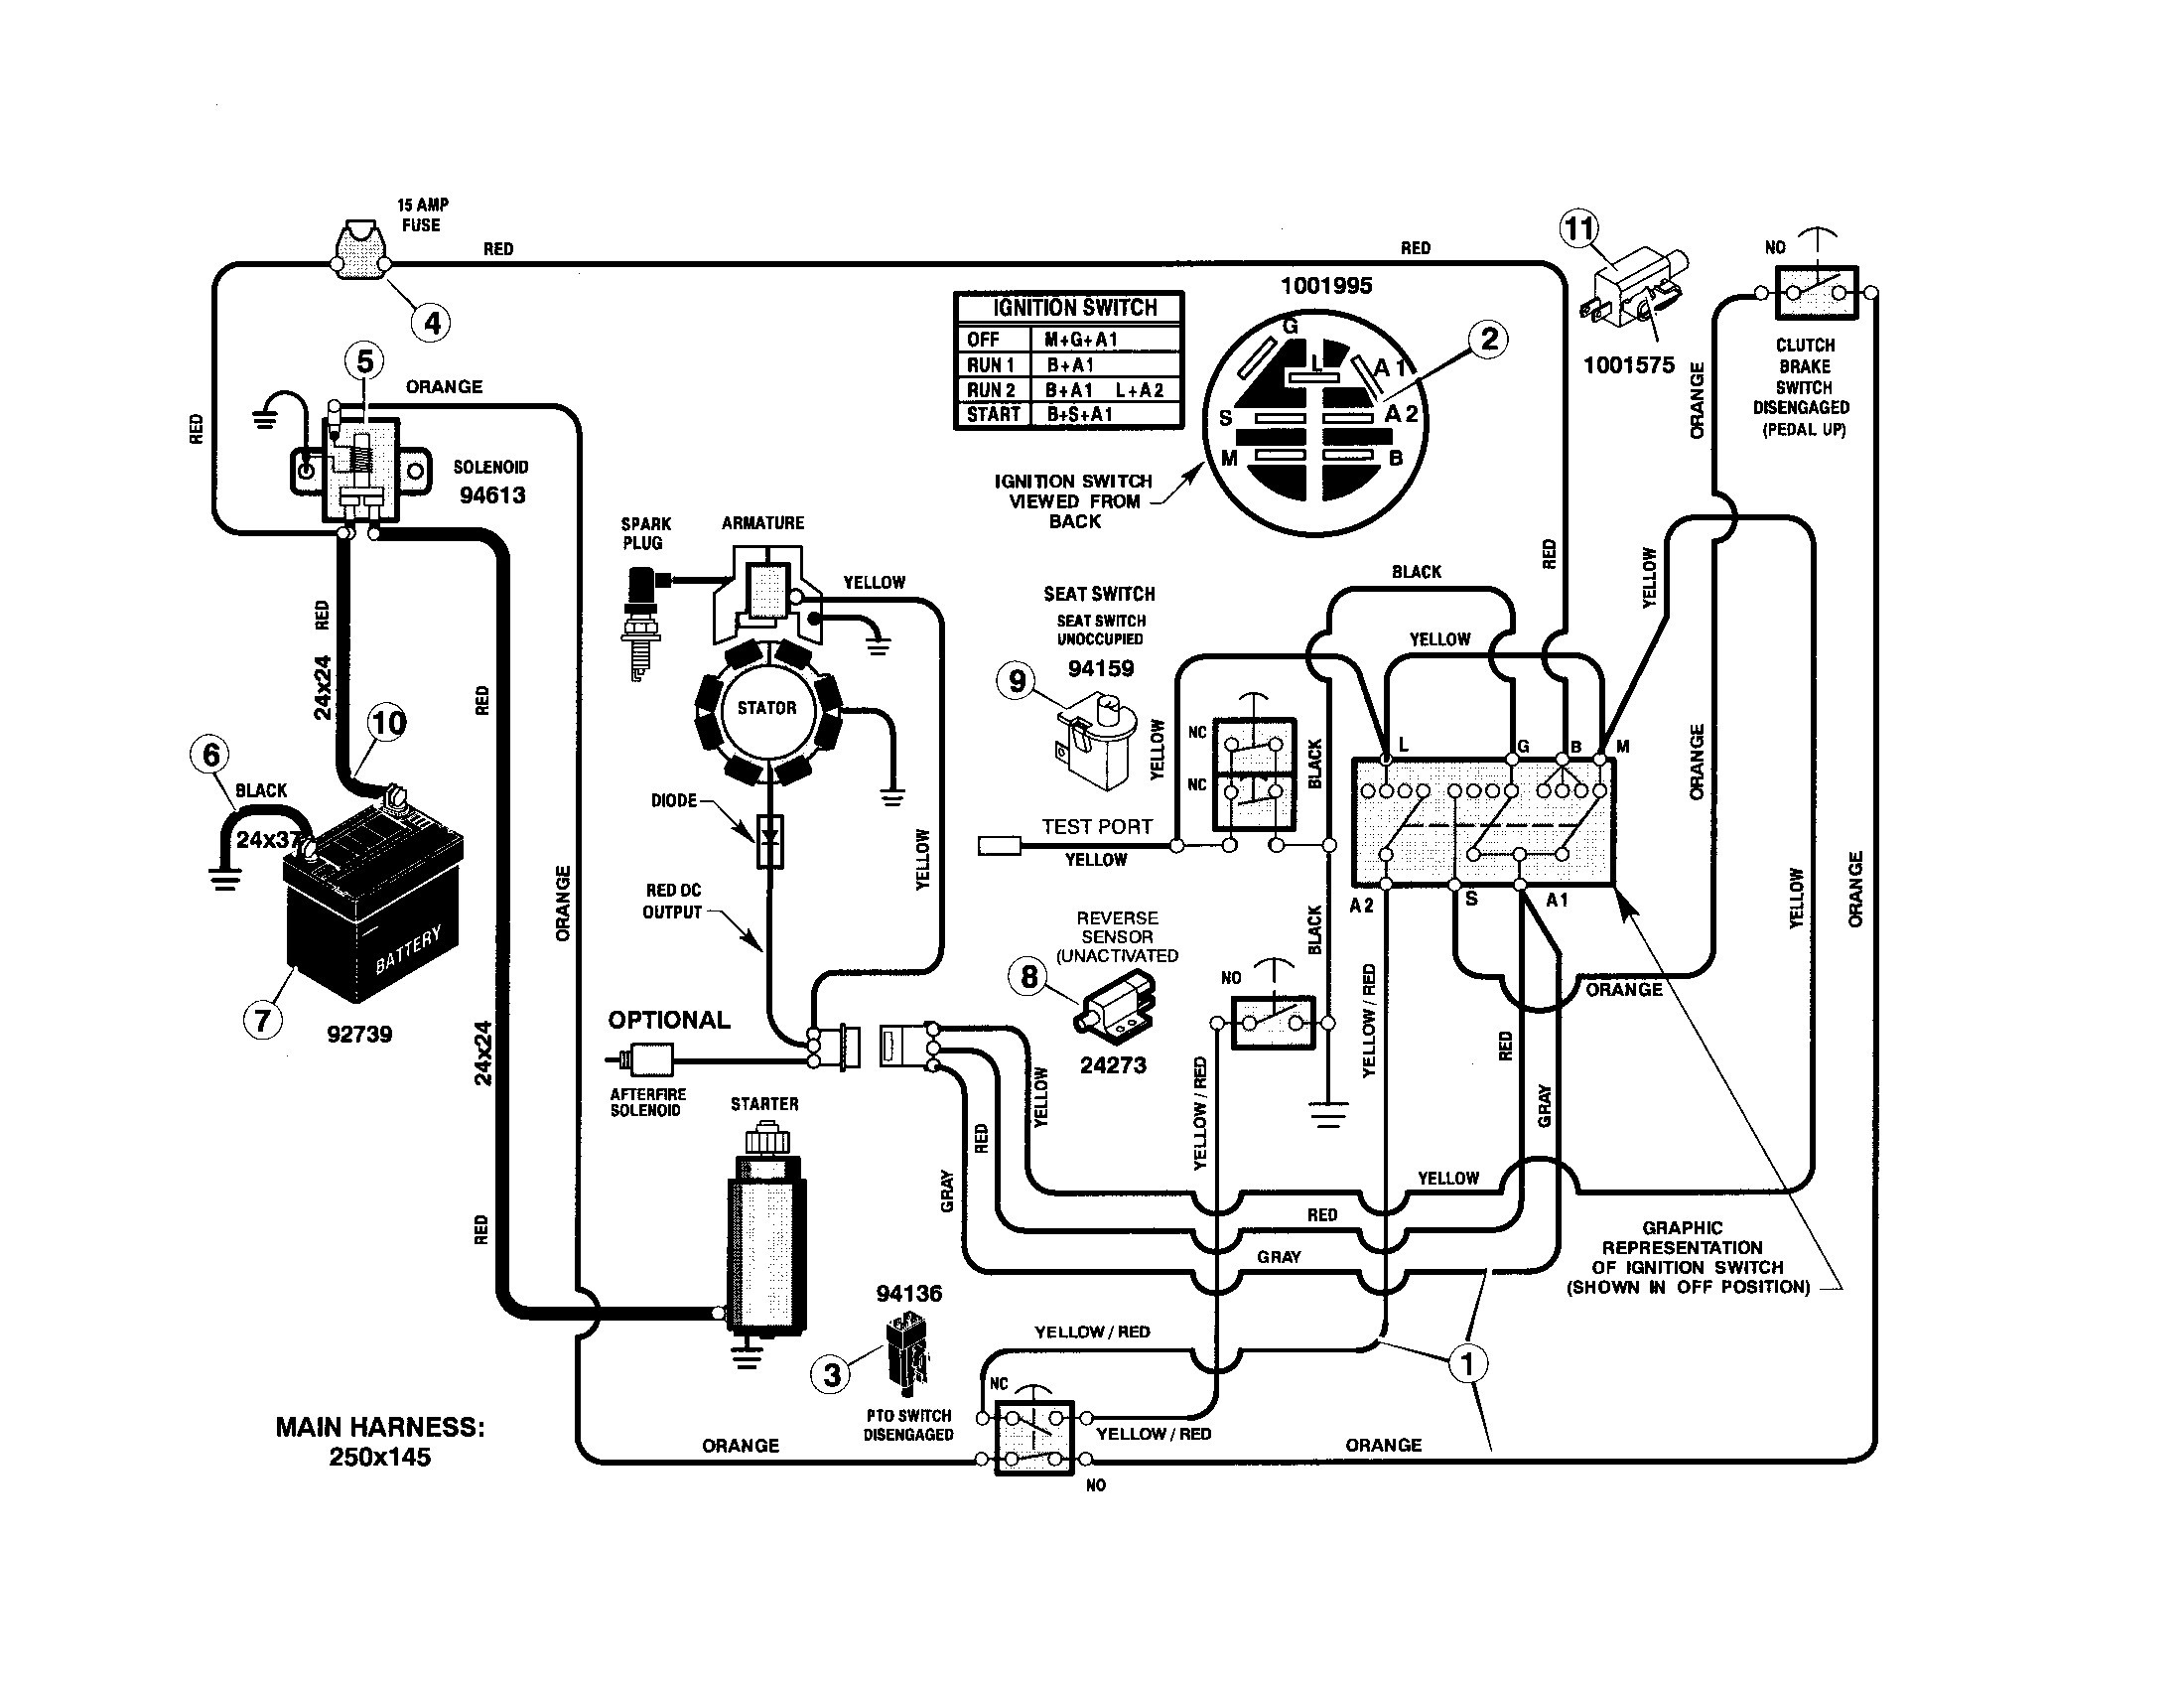 toro lawn mower wiring diagram diagram base website wiring diagram ...  diagram base website full edition - teutas